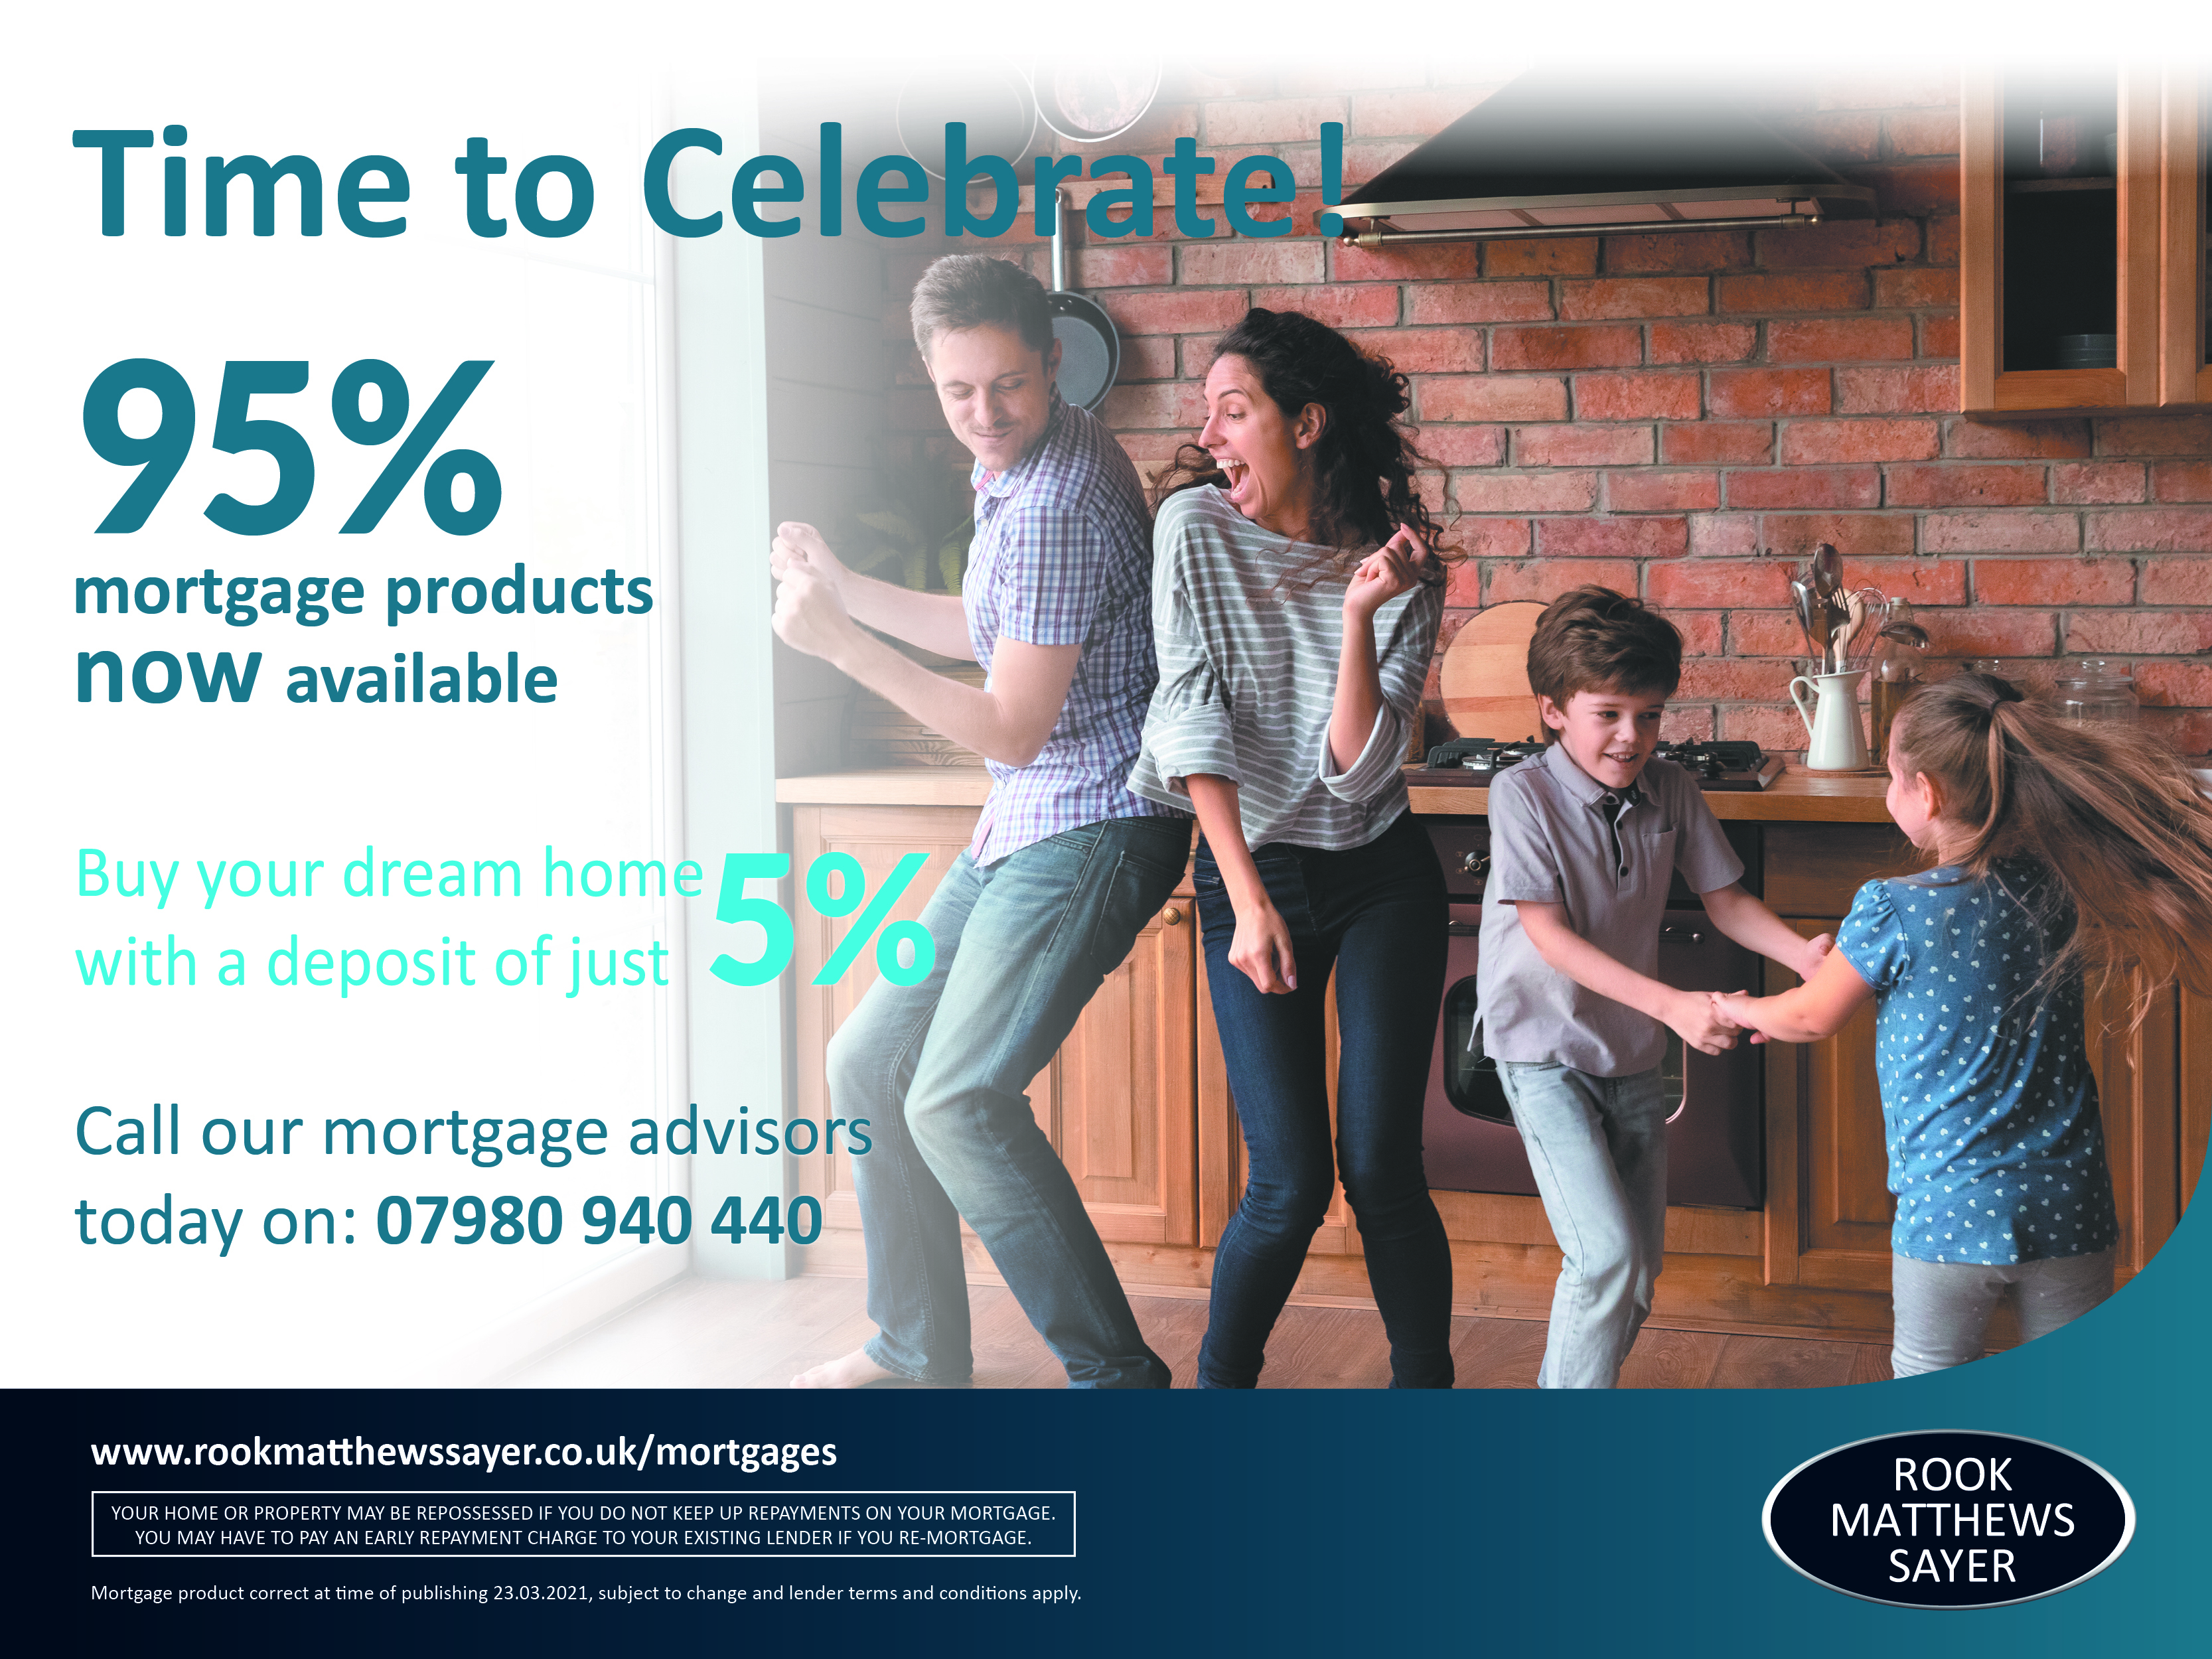 95% Mortgage products are NOW available